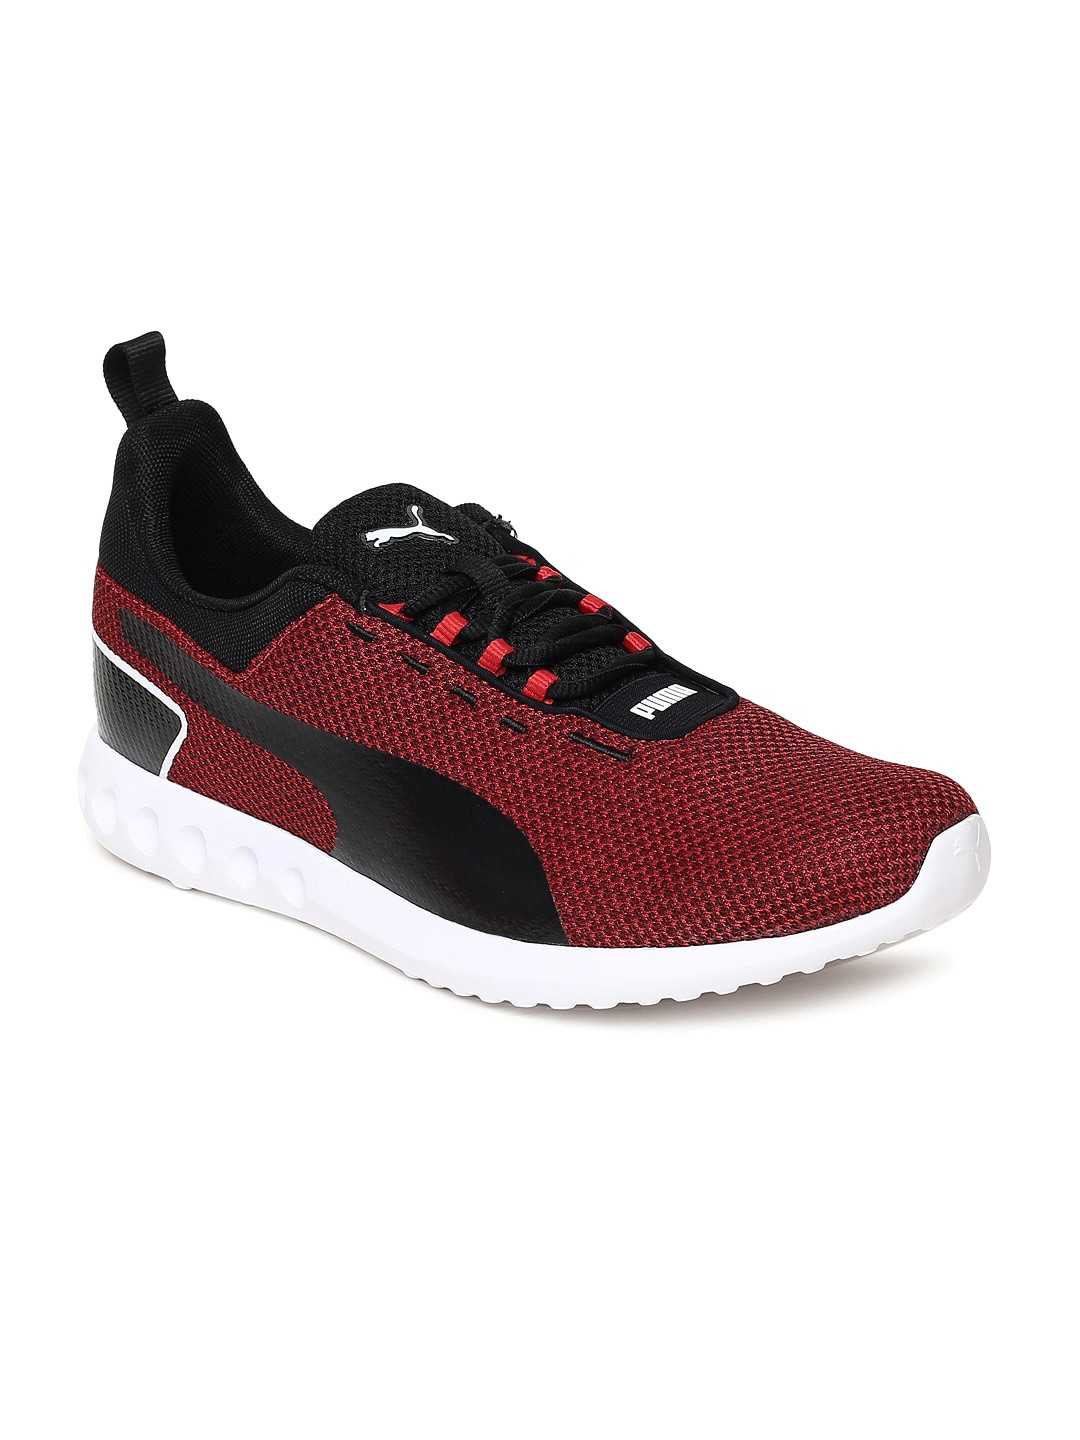 f738406a1c47 Puma Shoes - Buy Puma Shoes for Men   Women Online in India